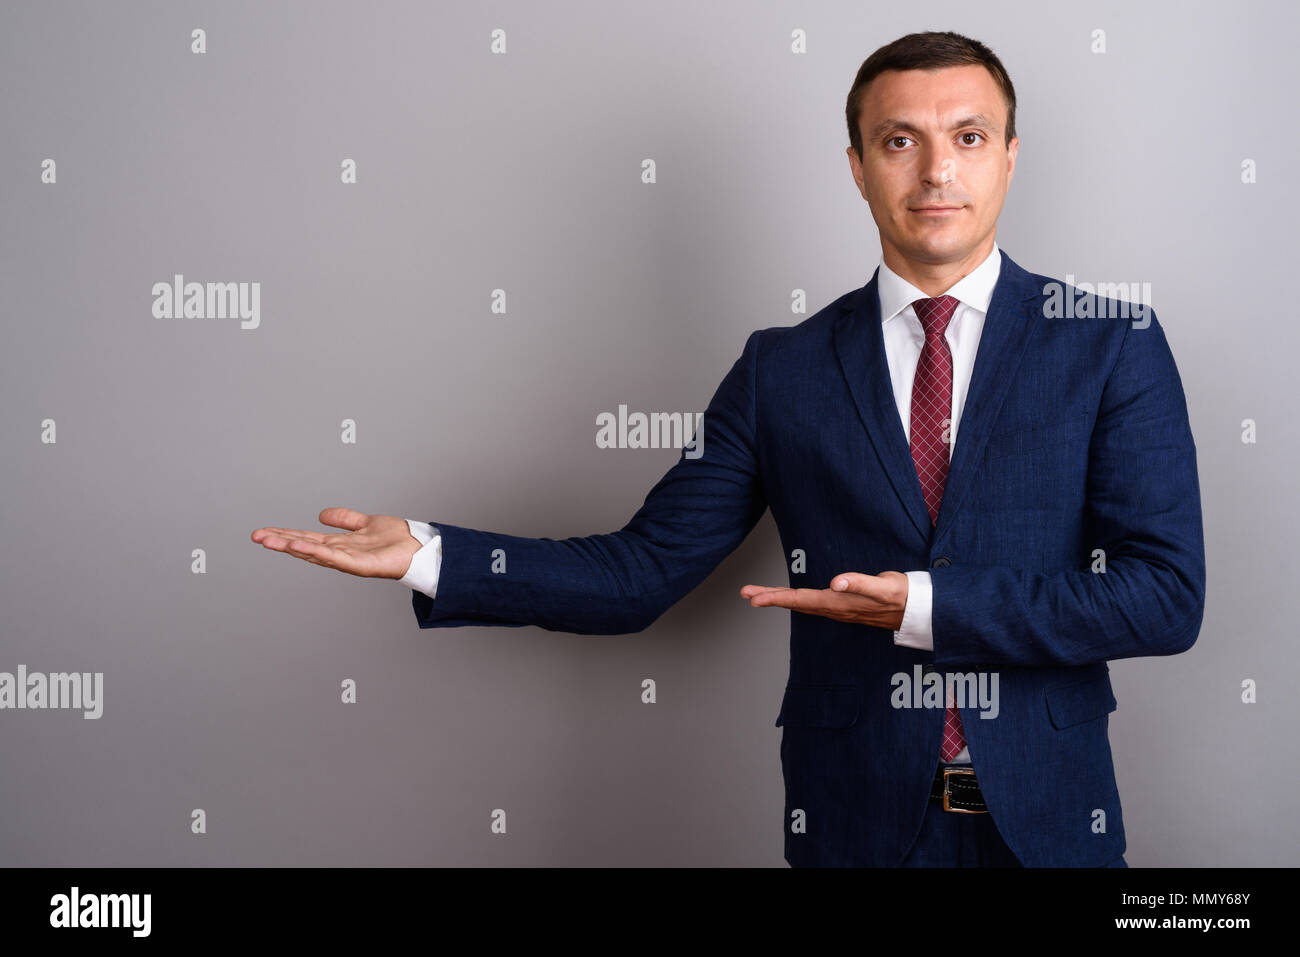 Businessman wearing suit against gray background - Stock Image